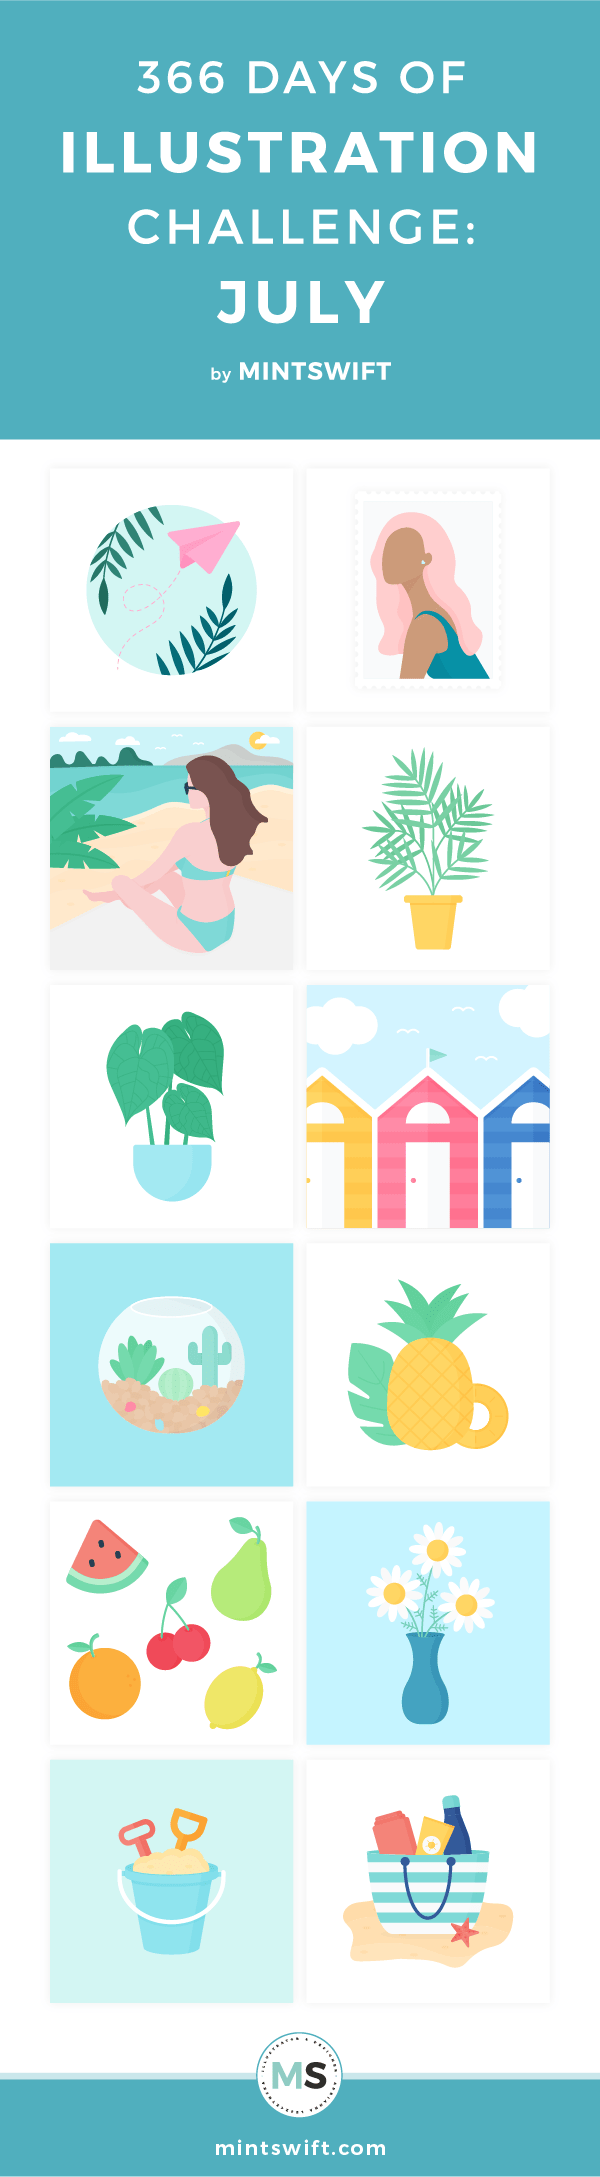 Top 12 flat illustrations about the beach, house plants, fruits from July